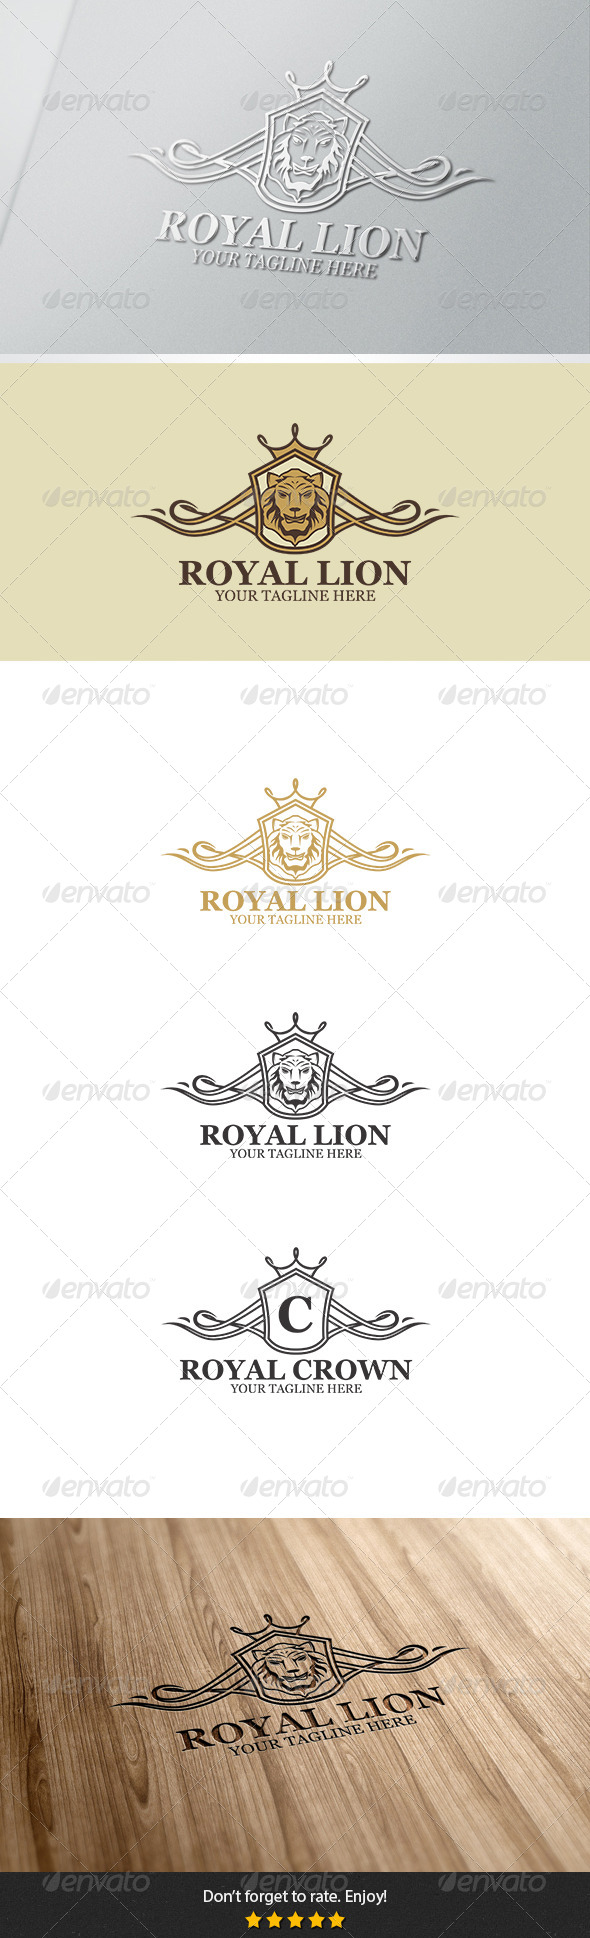 Royal Lion Logo - Crests Logo Templates